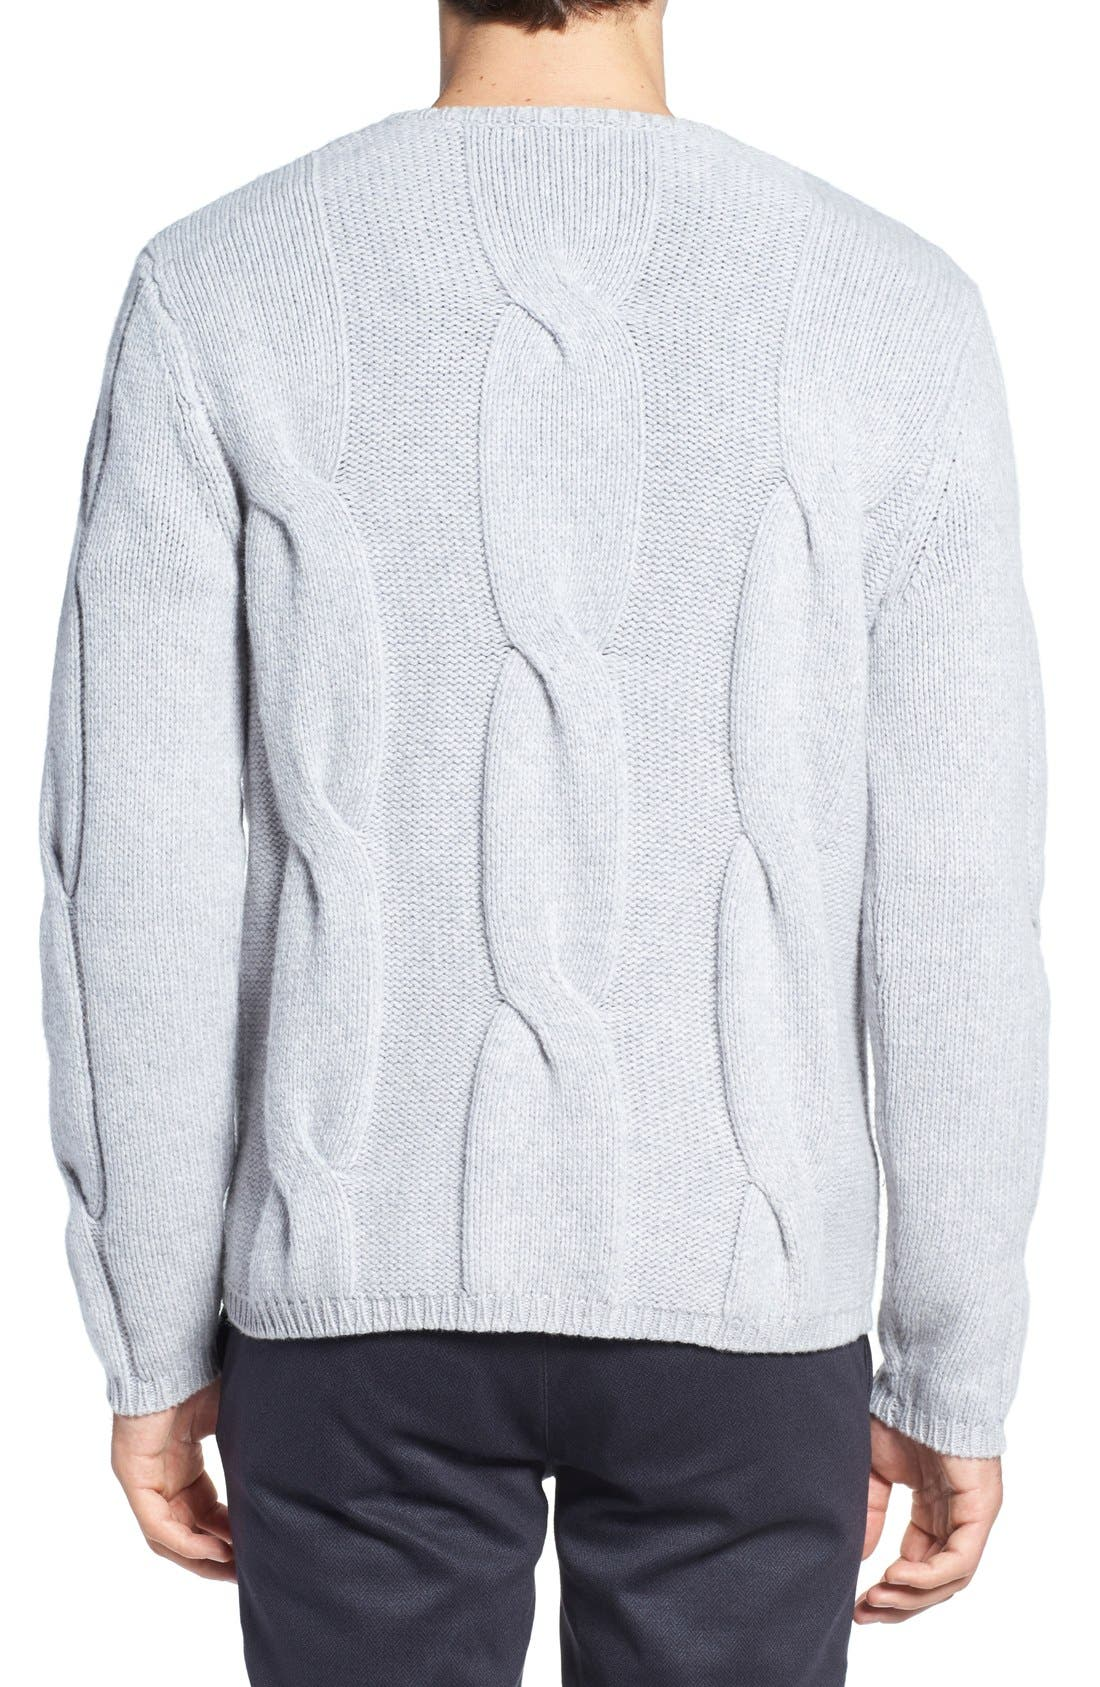 Wool & Cashmere Sweater,                             Alternate thumbnail 2, color,                             Light Grey